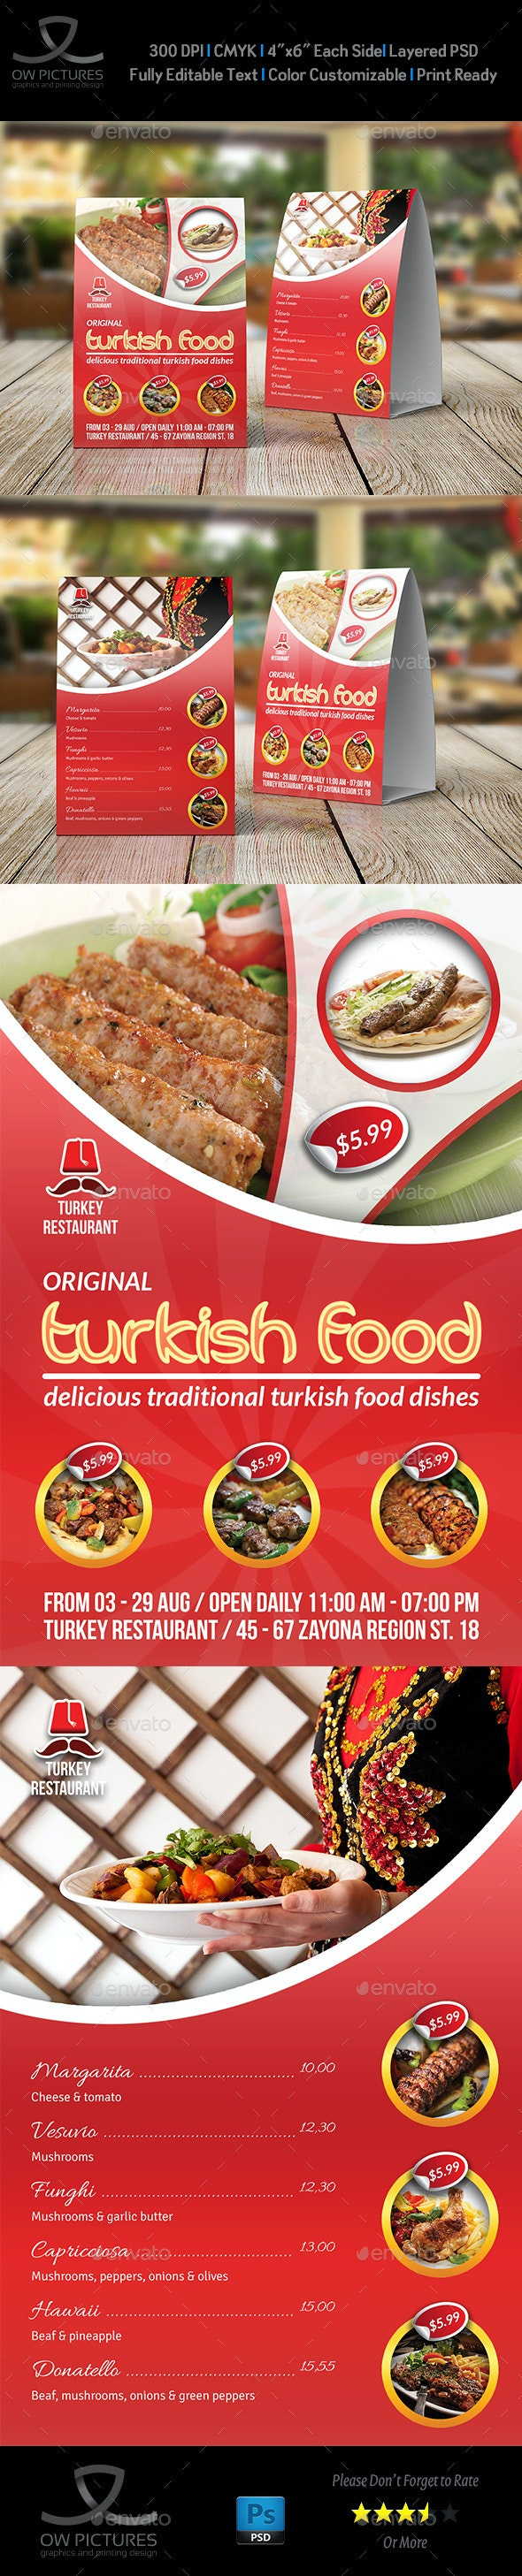 Turkish Restaurant Table Tent Template - Food Menus Print Templates